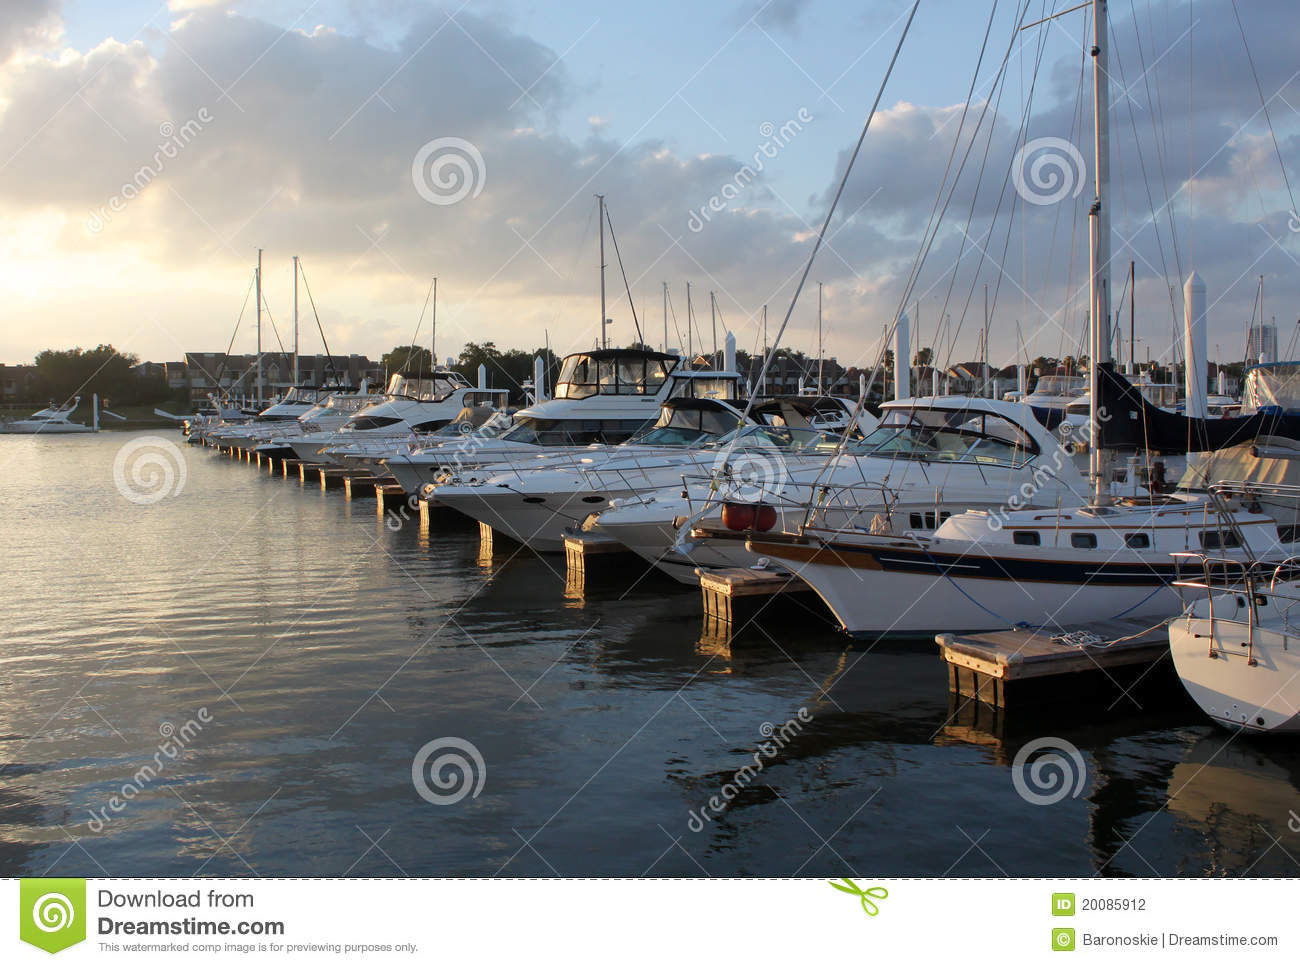 Many boats are lined up in a dock.